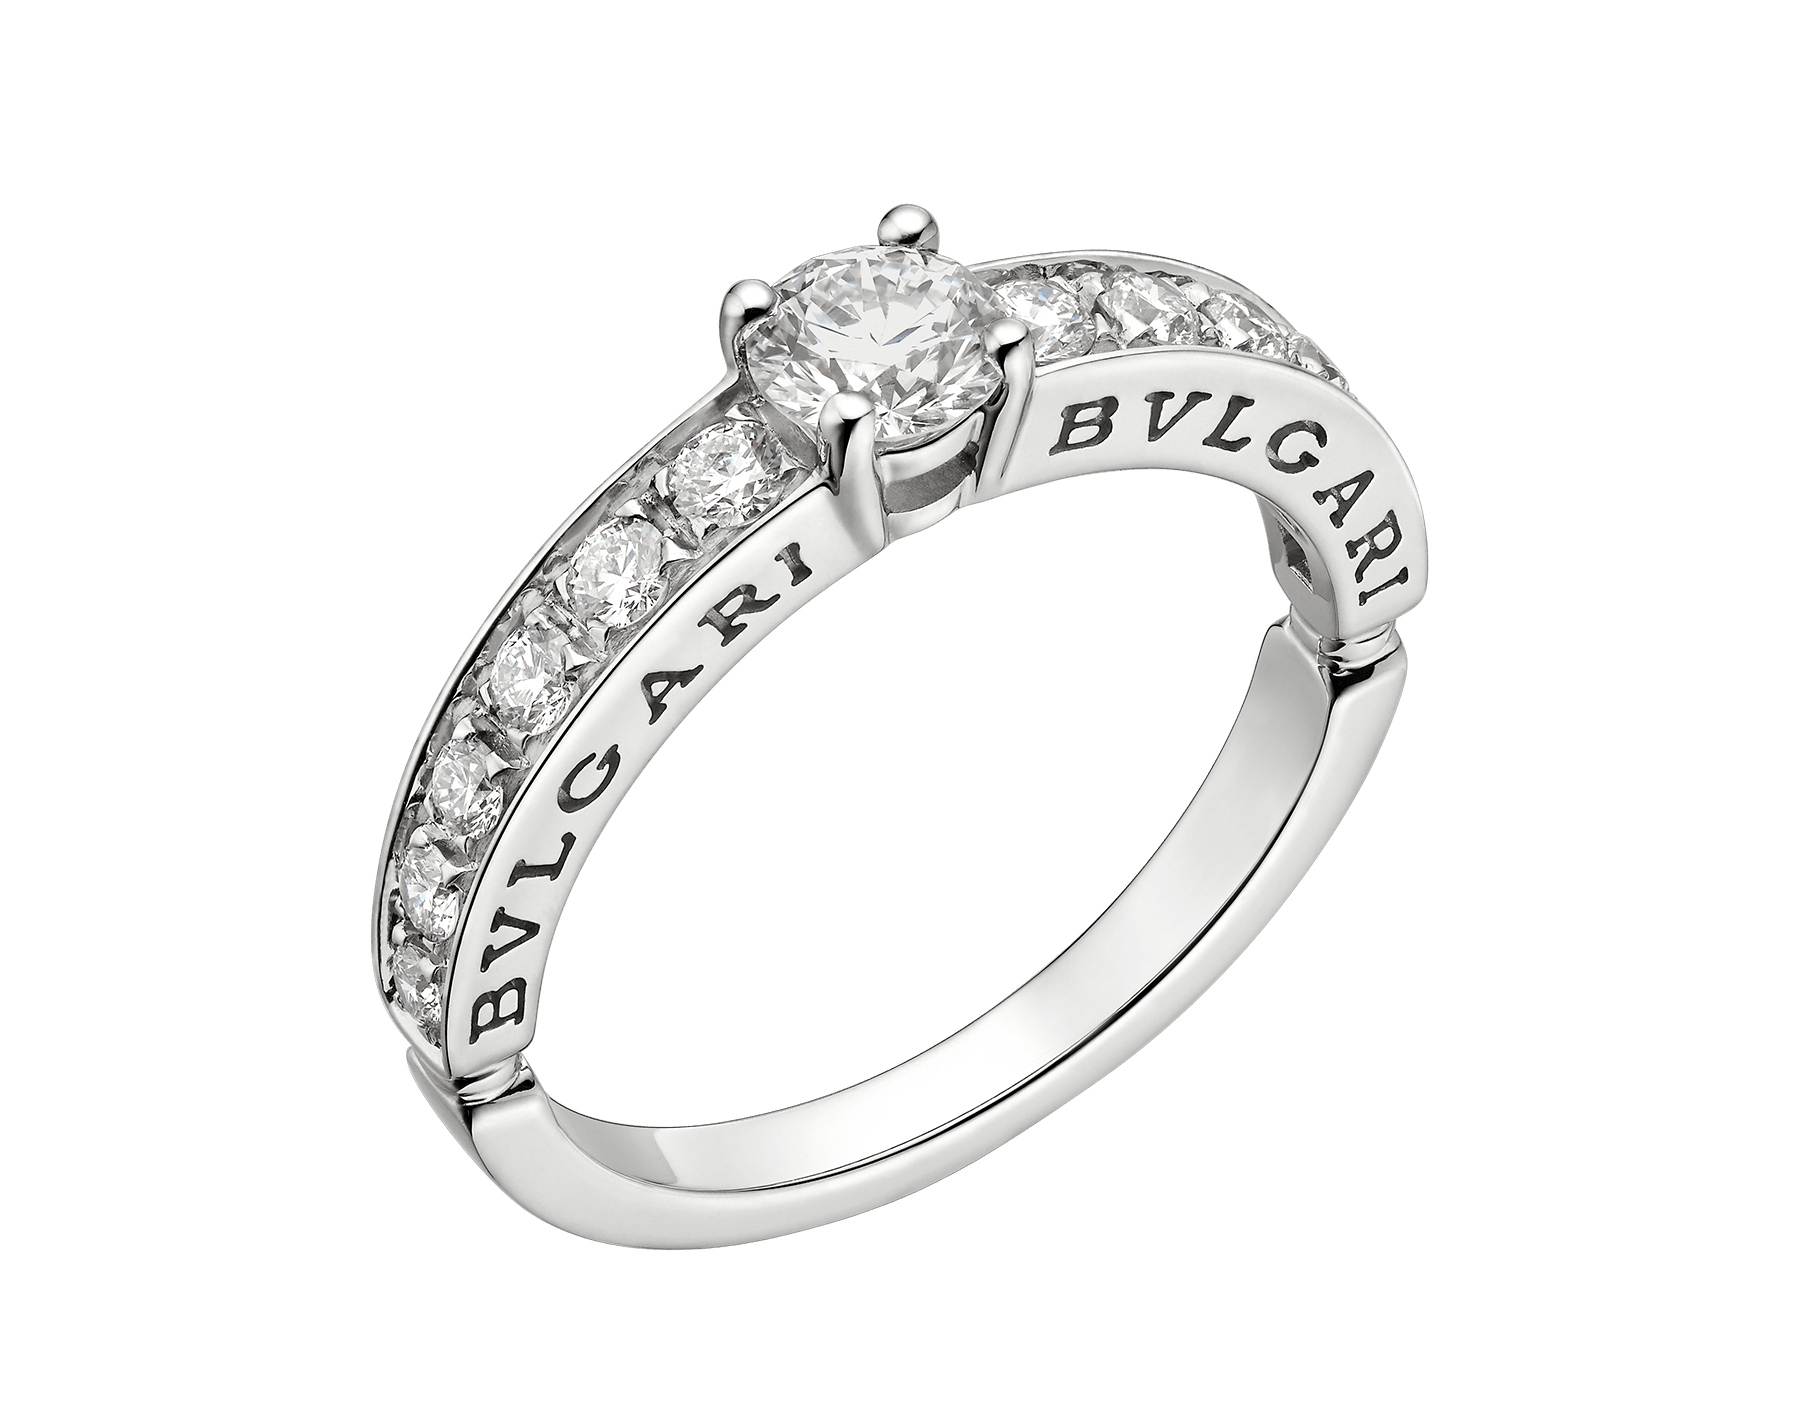 Dedicata a Venezia: 1503 solitaire ring in platinum with a round brilliant-cut diamond, pavé diamonds and engraved logo. Named after the year in which the first engagement ring was offered in Venice. 343525 image 1